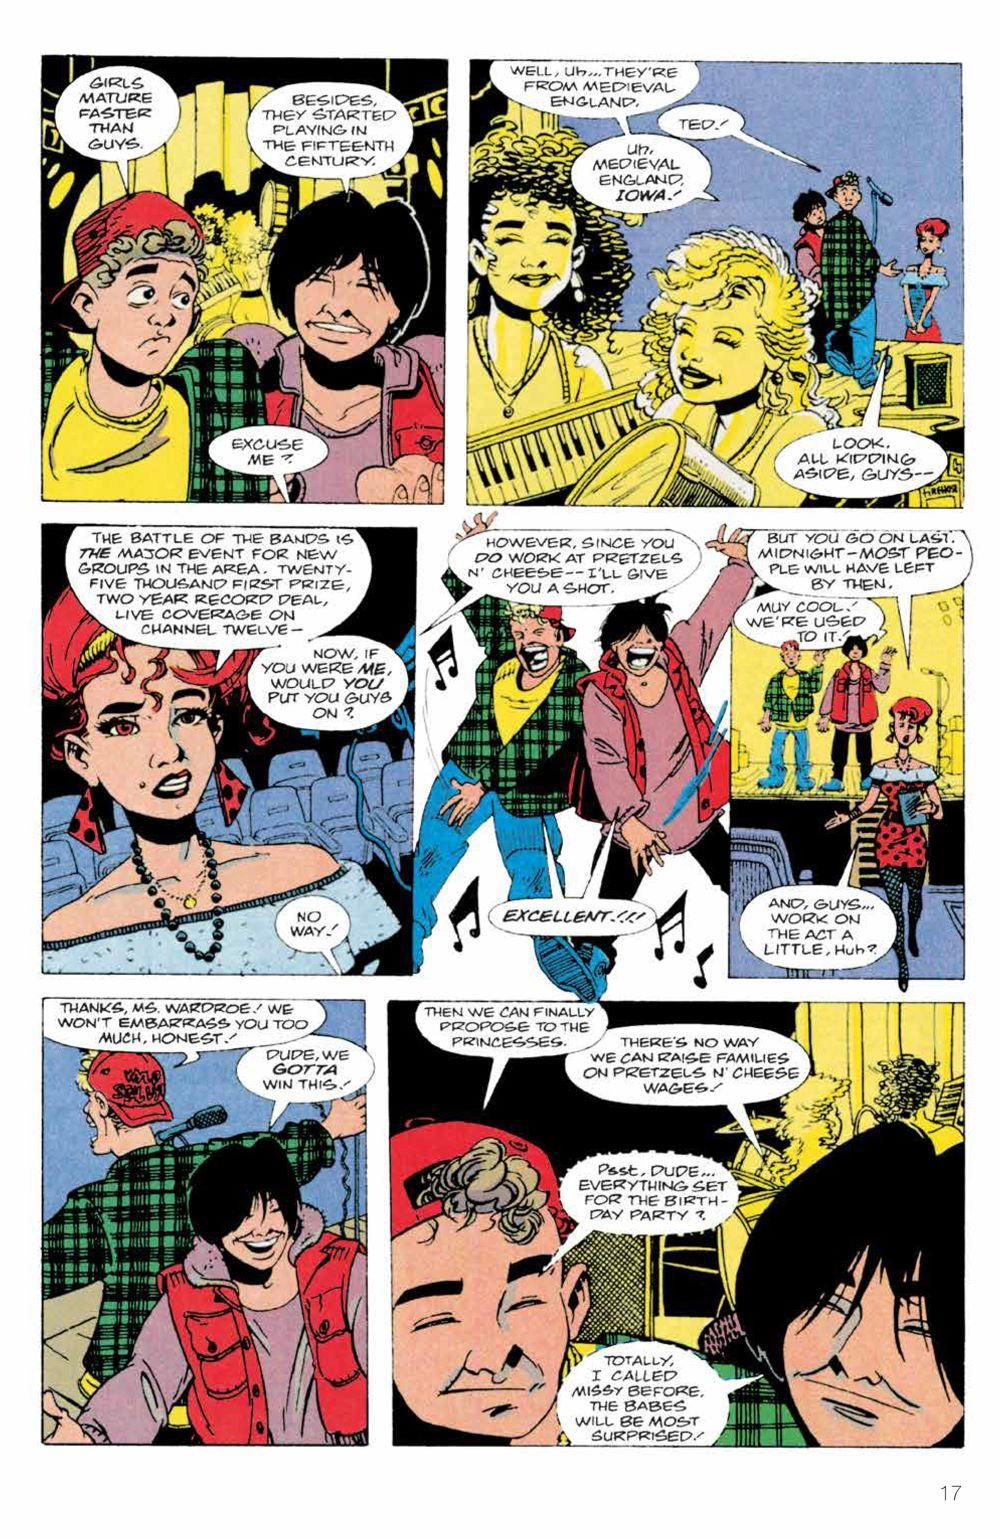 BillTed_Archive_SC_PRESS_19-1 ComicList Previews: BILL AND TED'S EXCELLENT COMIC BOOK ARCHIVE TP